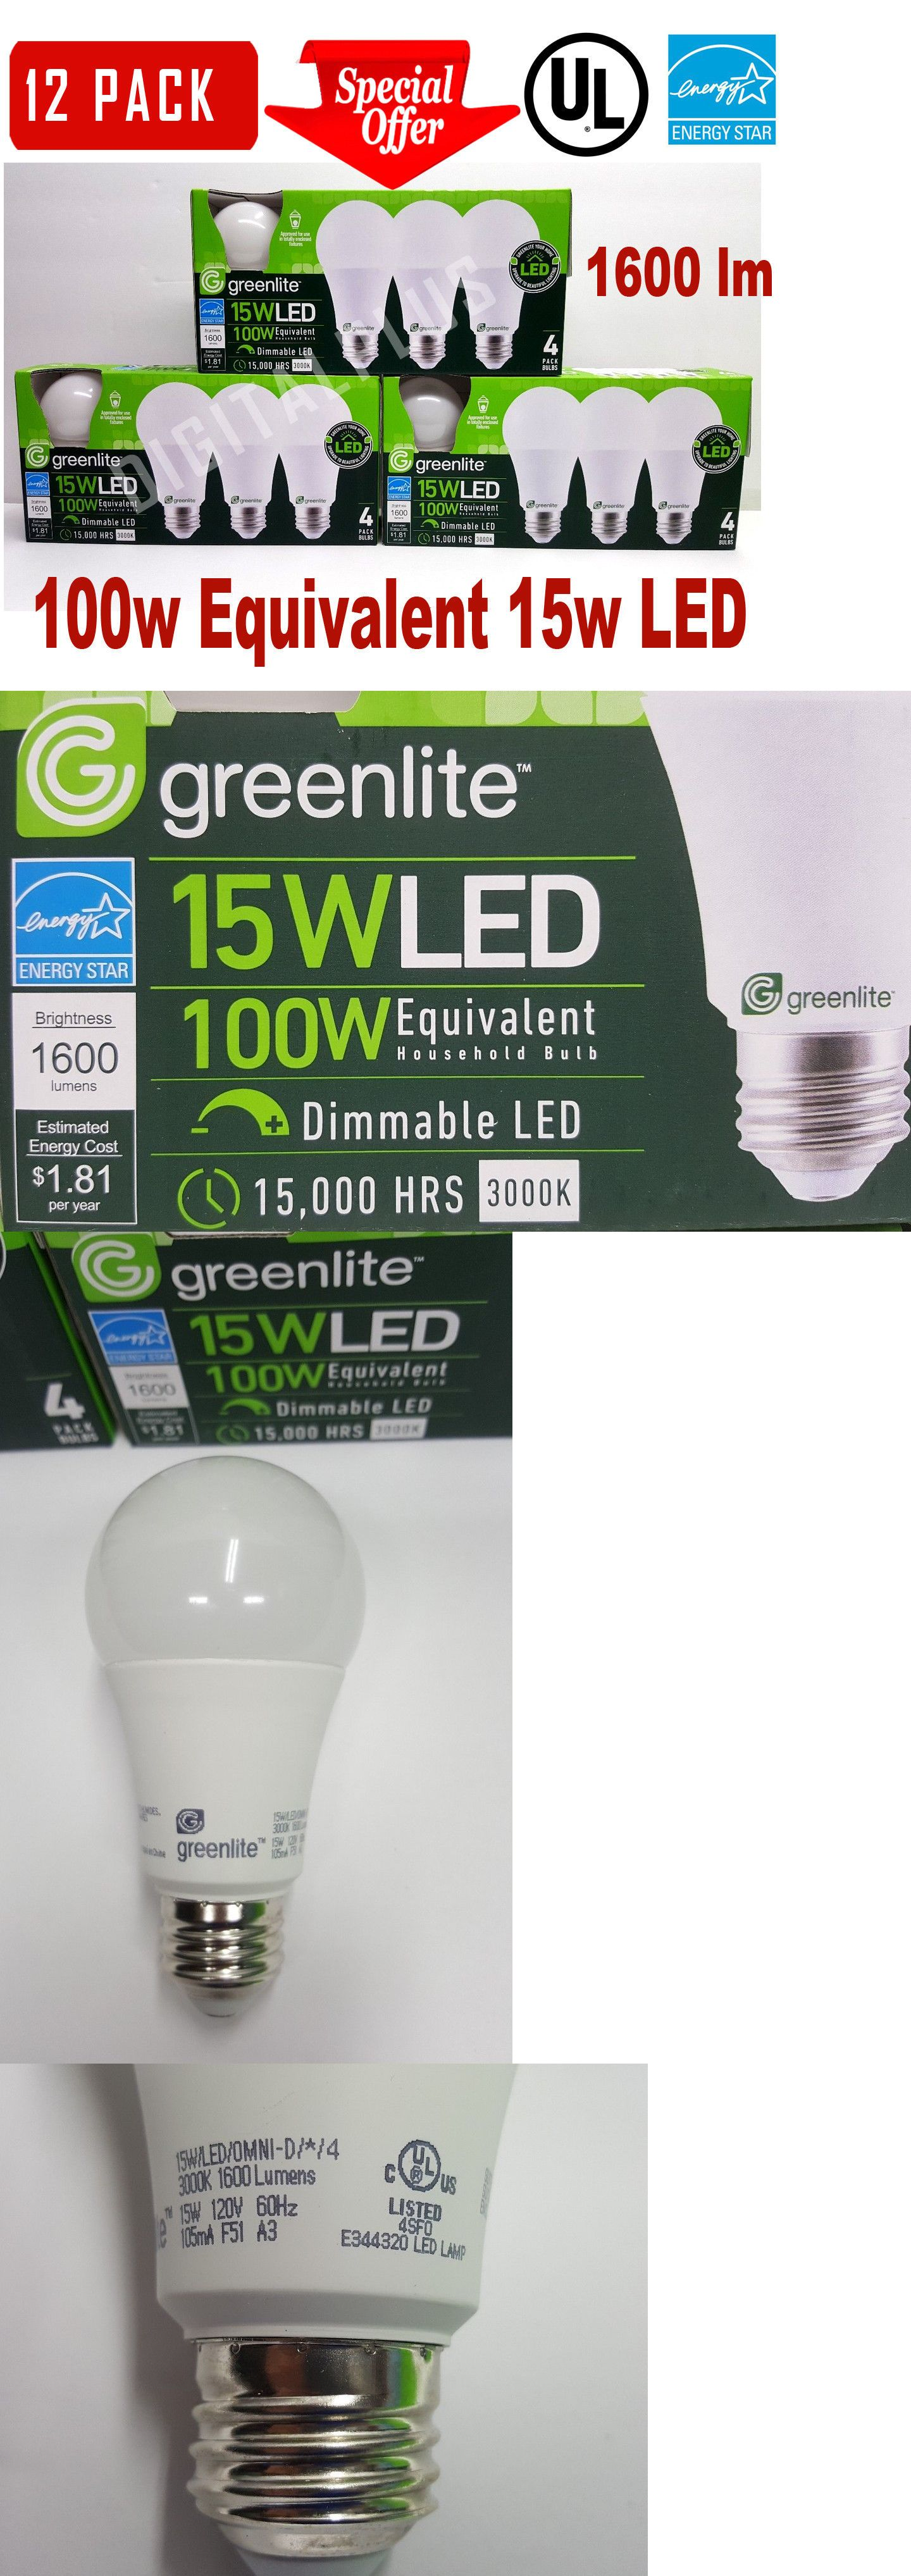 12 Led Light Bulbs Maxlite 15w 1600 Lumens Soft White 2700k A19 E26 Dimmable Ebay Led Light Bulbs Light Bulbs Bulb